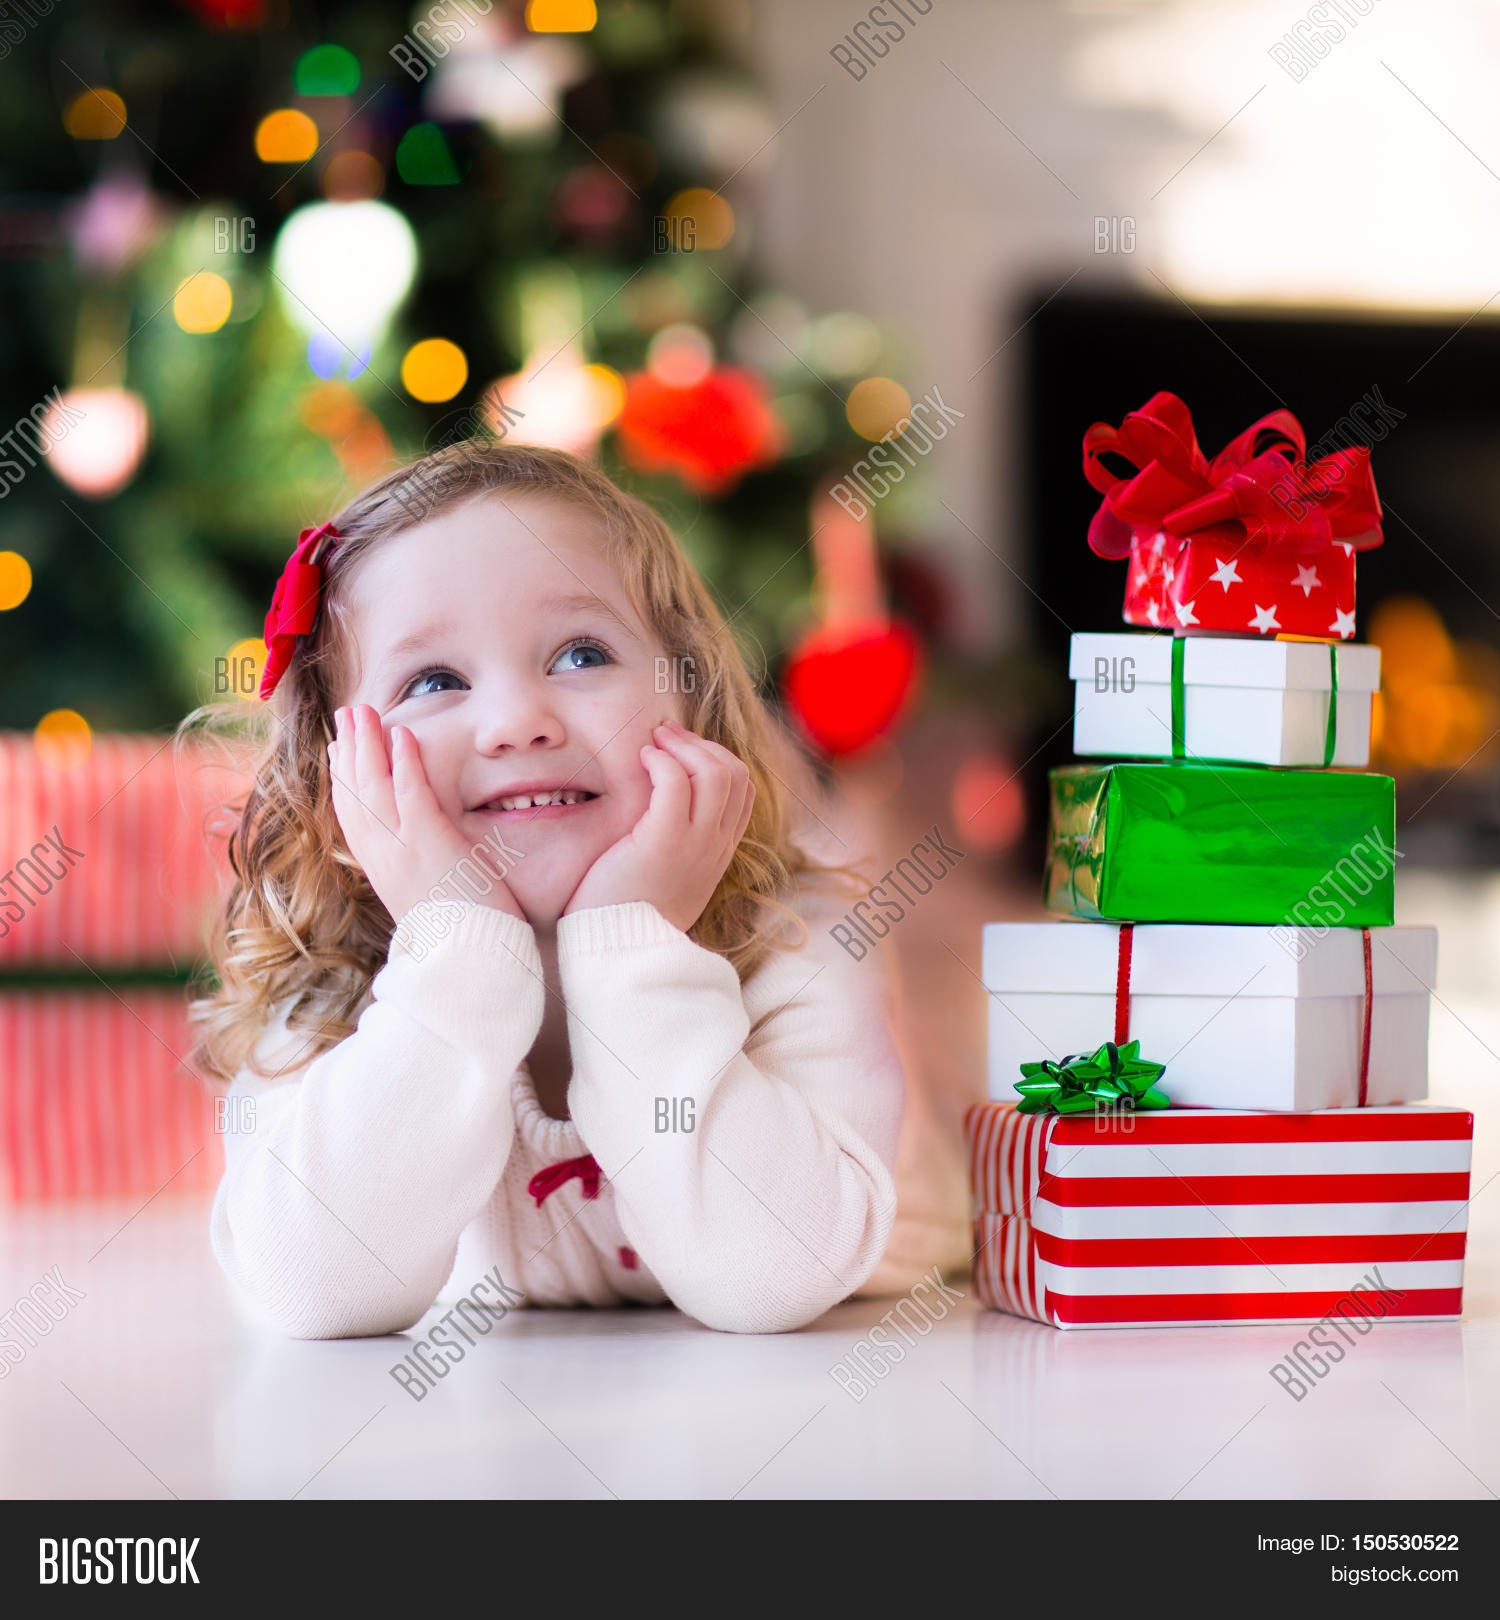 Family On Christmas Image & Photo (Free Trial) | Bigstock